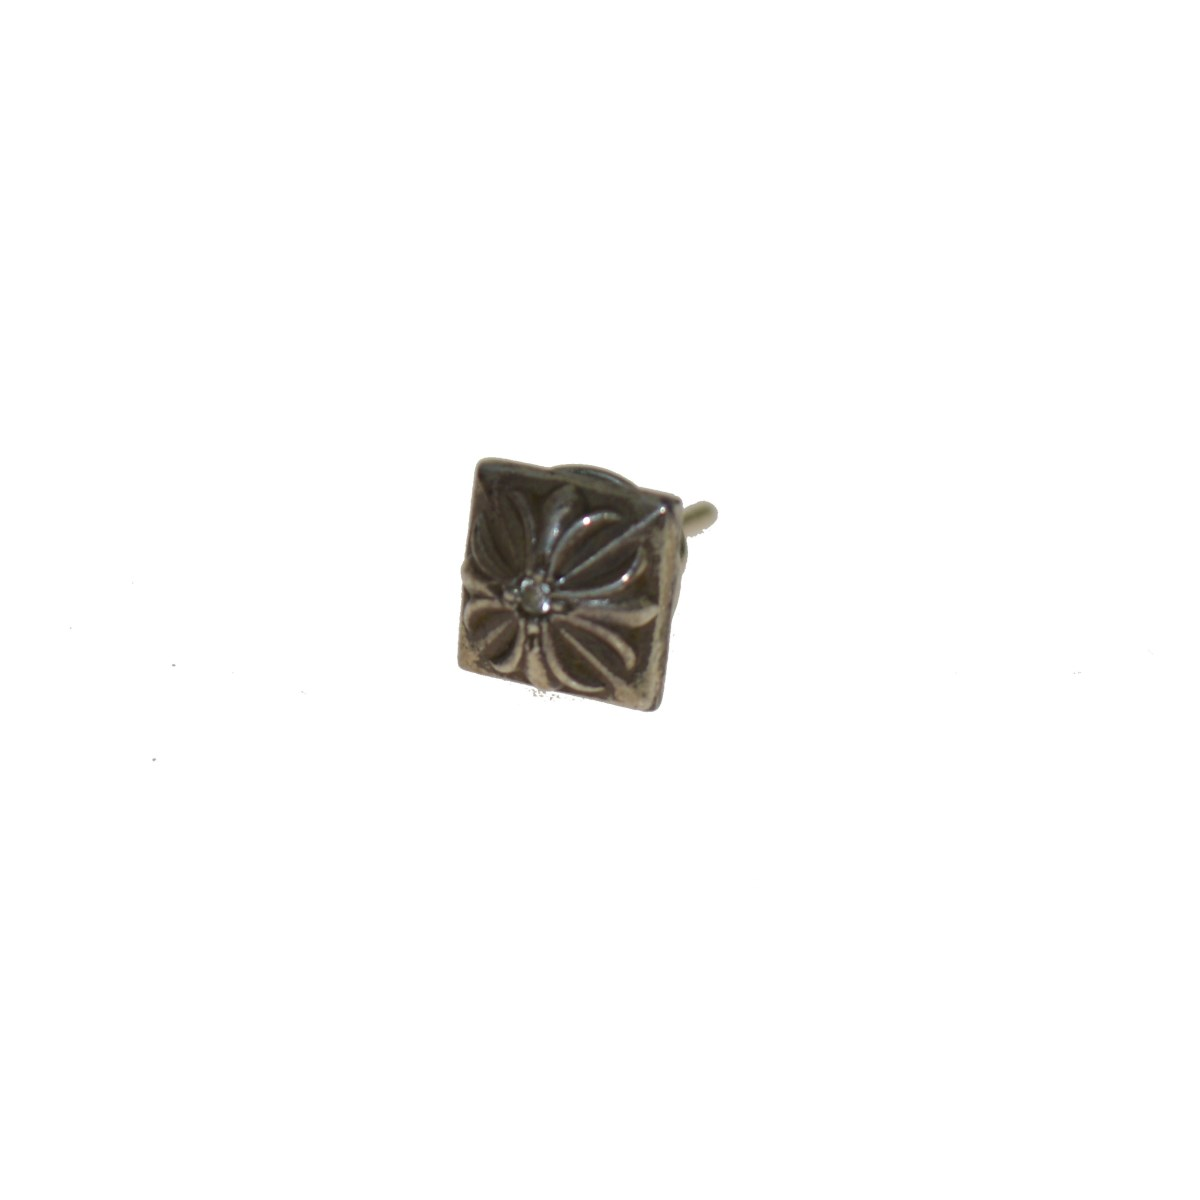 【中古】CHROME HEARTS PYRAMID PLUS STUD DIAMOND ピアス 【送料無料】 【116046】 【KIND1550】